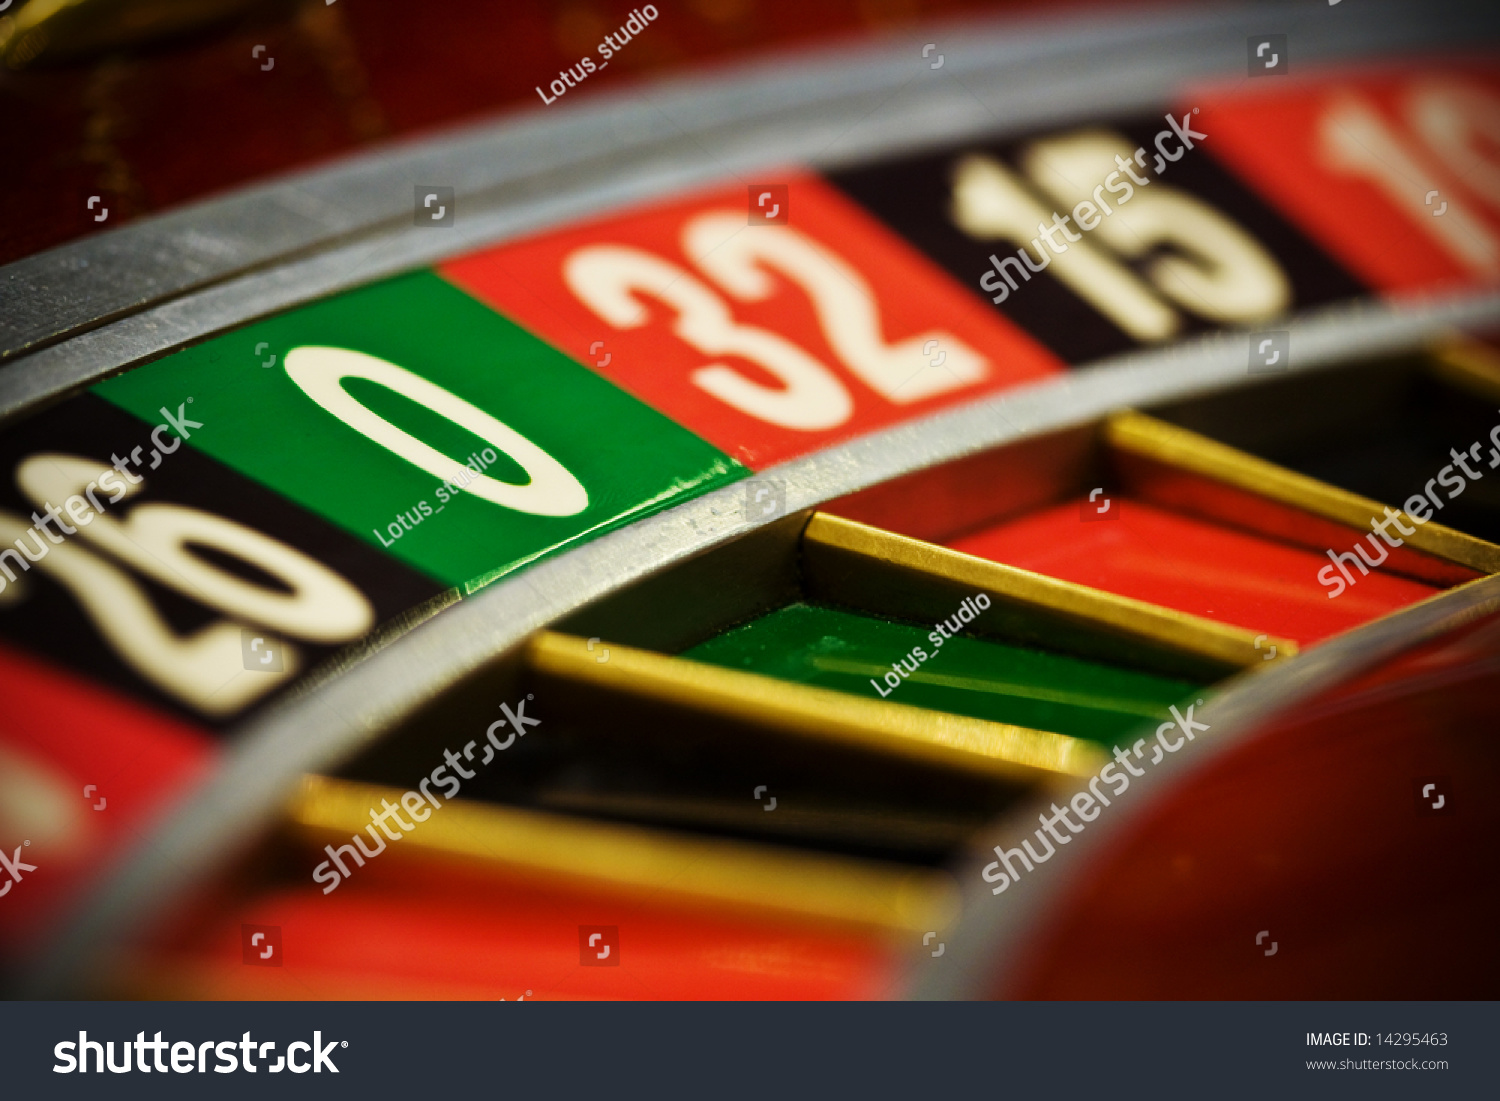 Zero roulette casino casino financial problems